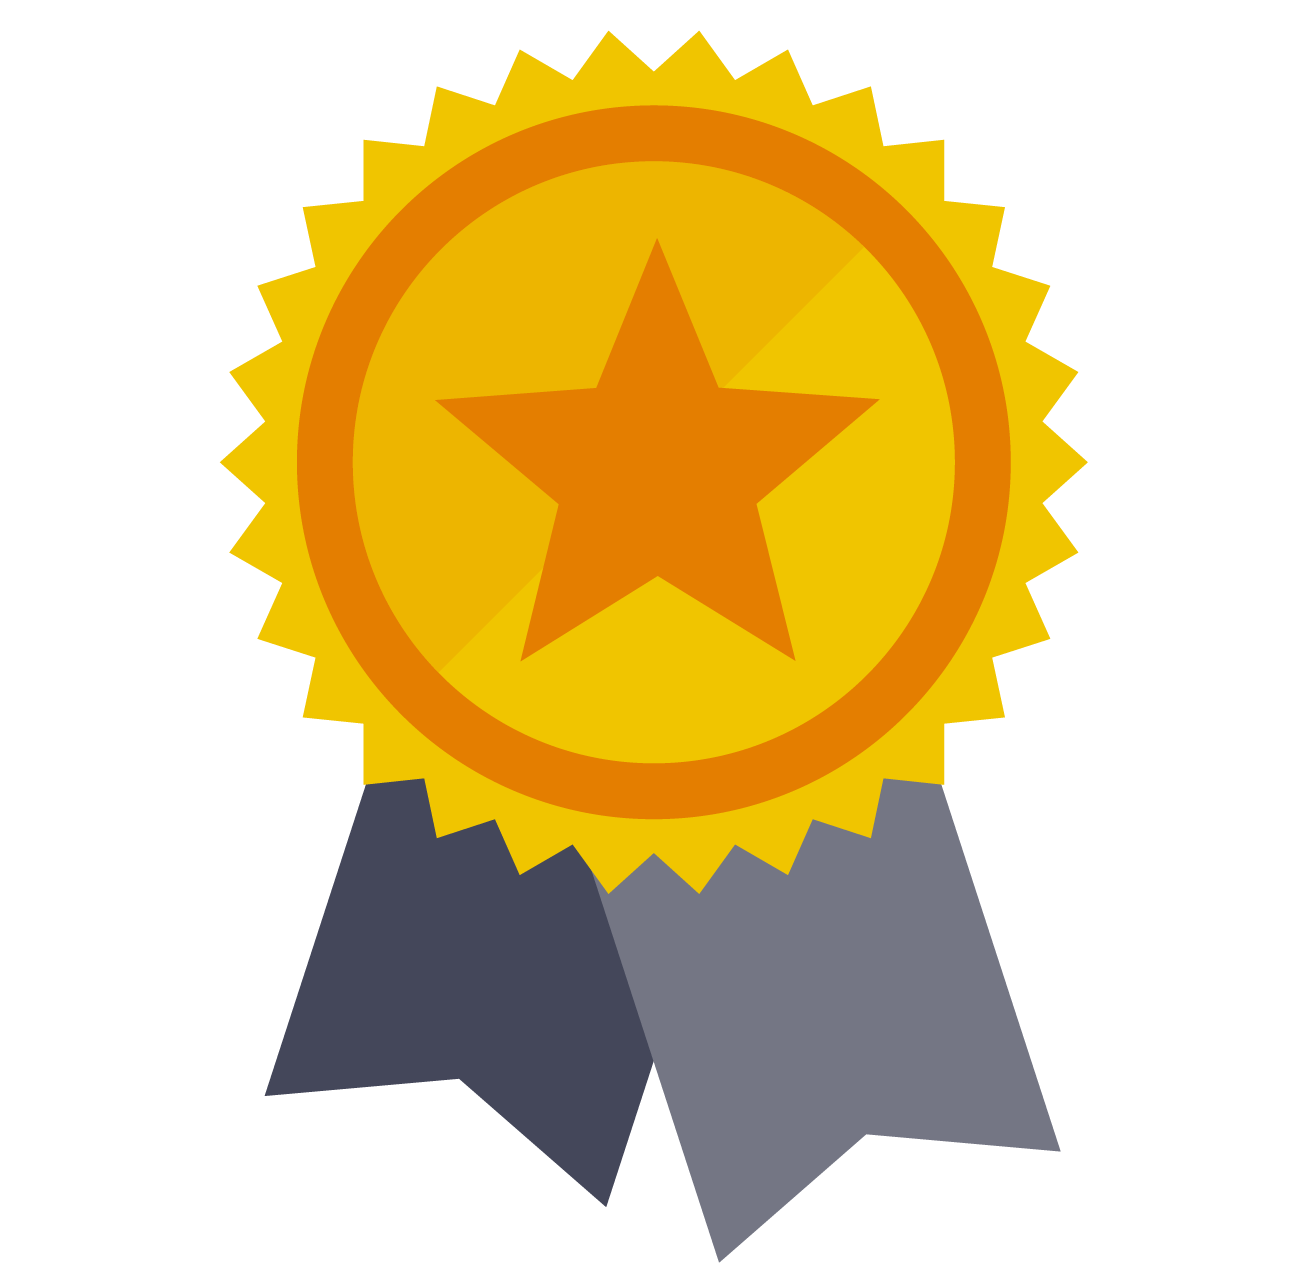 Award İcon Png & Free Award İcon.png Transparent Images #65861 - PNGio